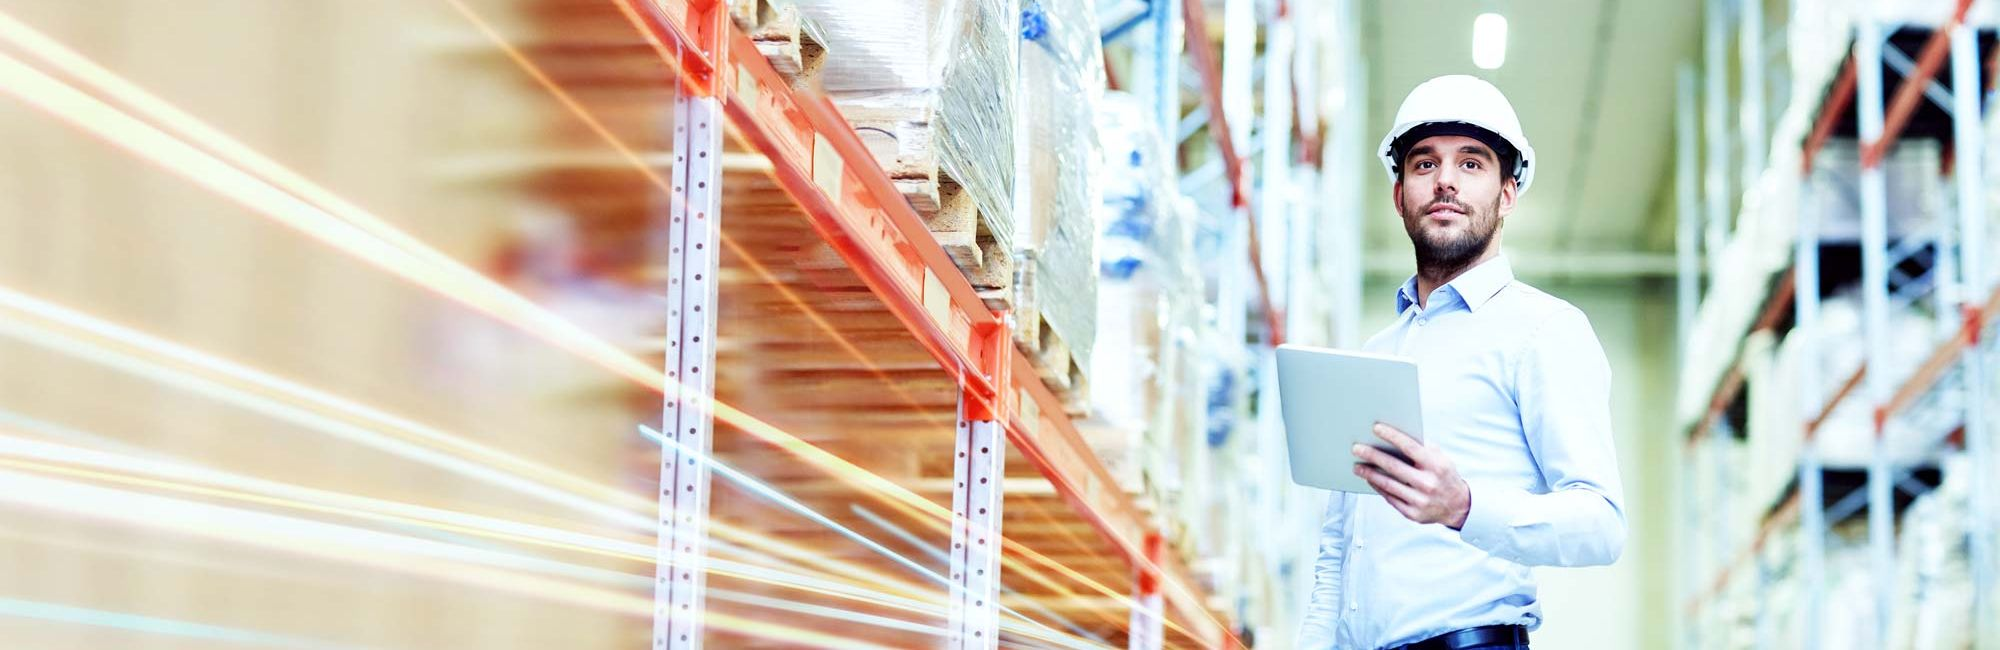 Warehouse Worker in Intralogistics